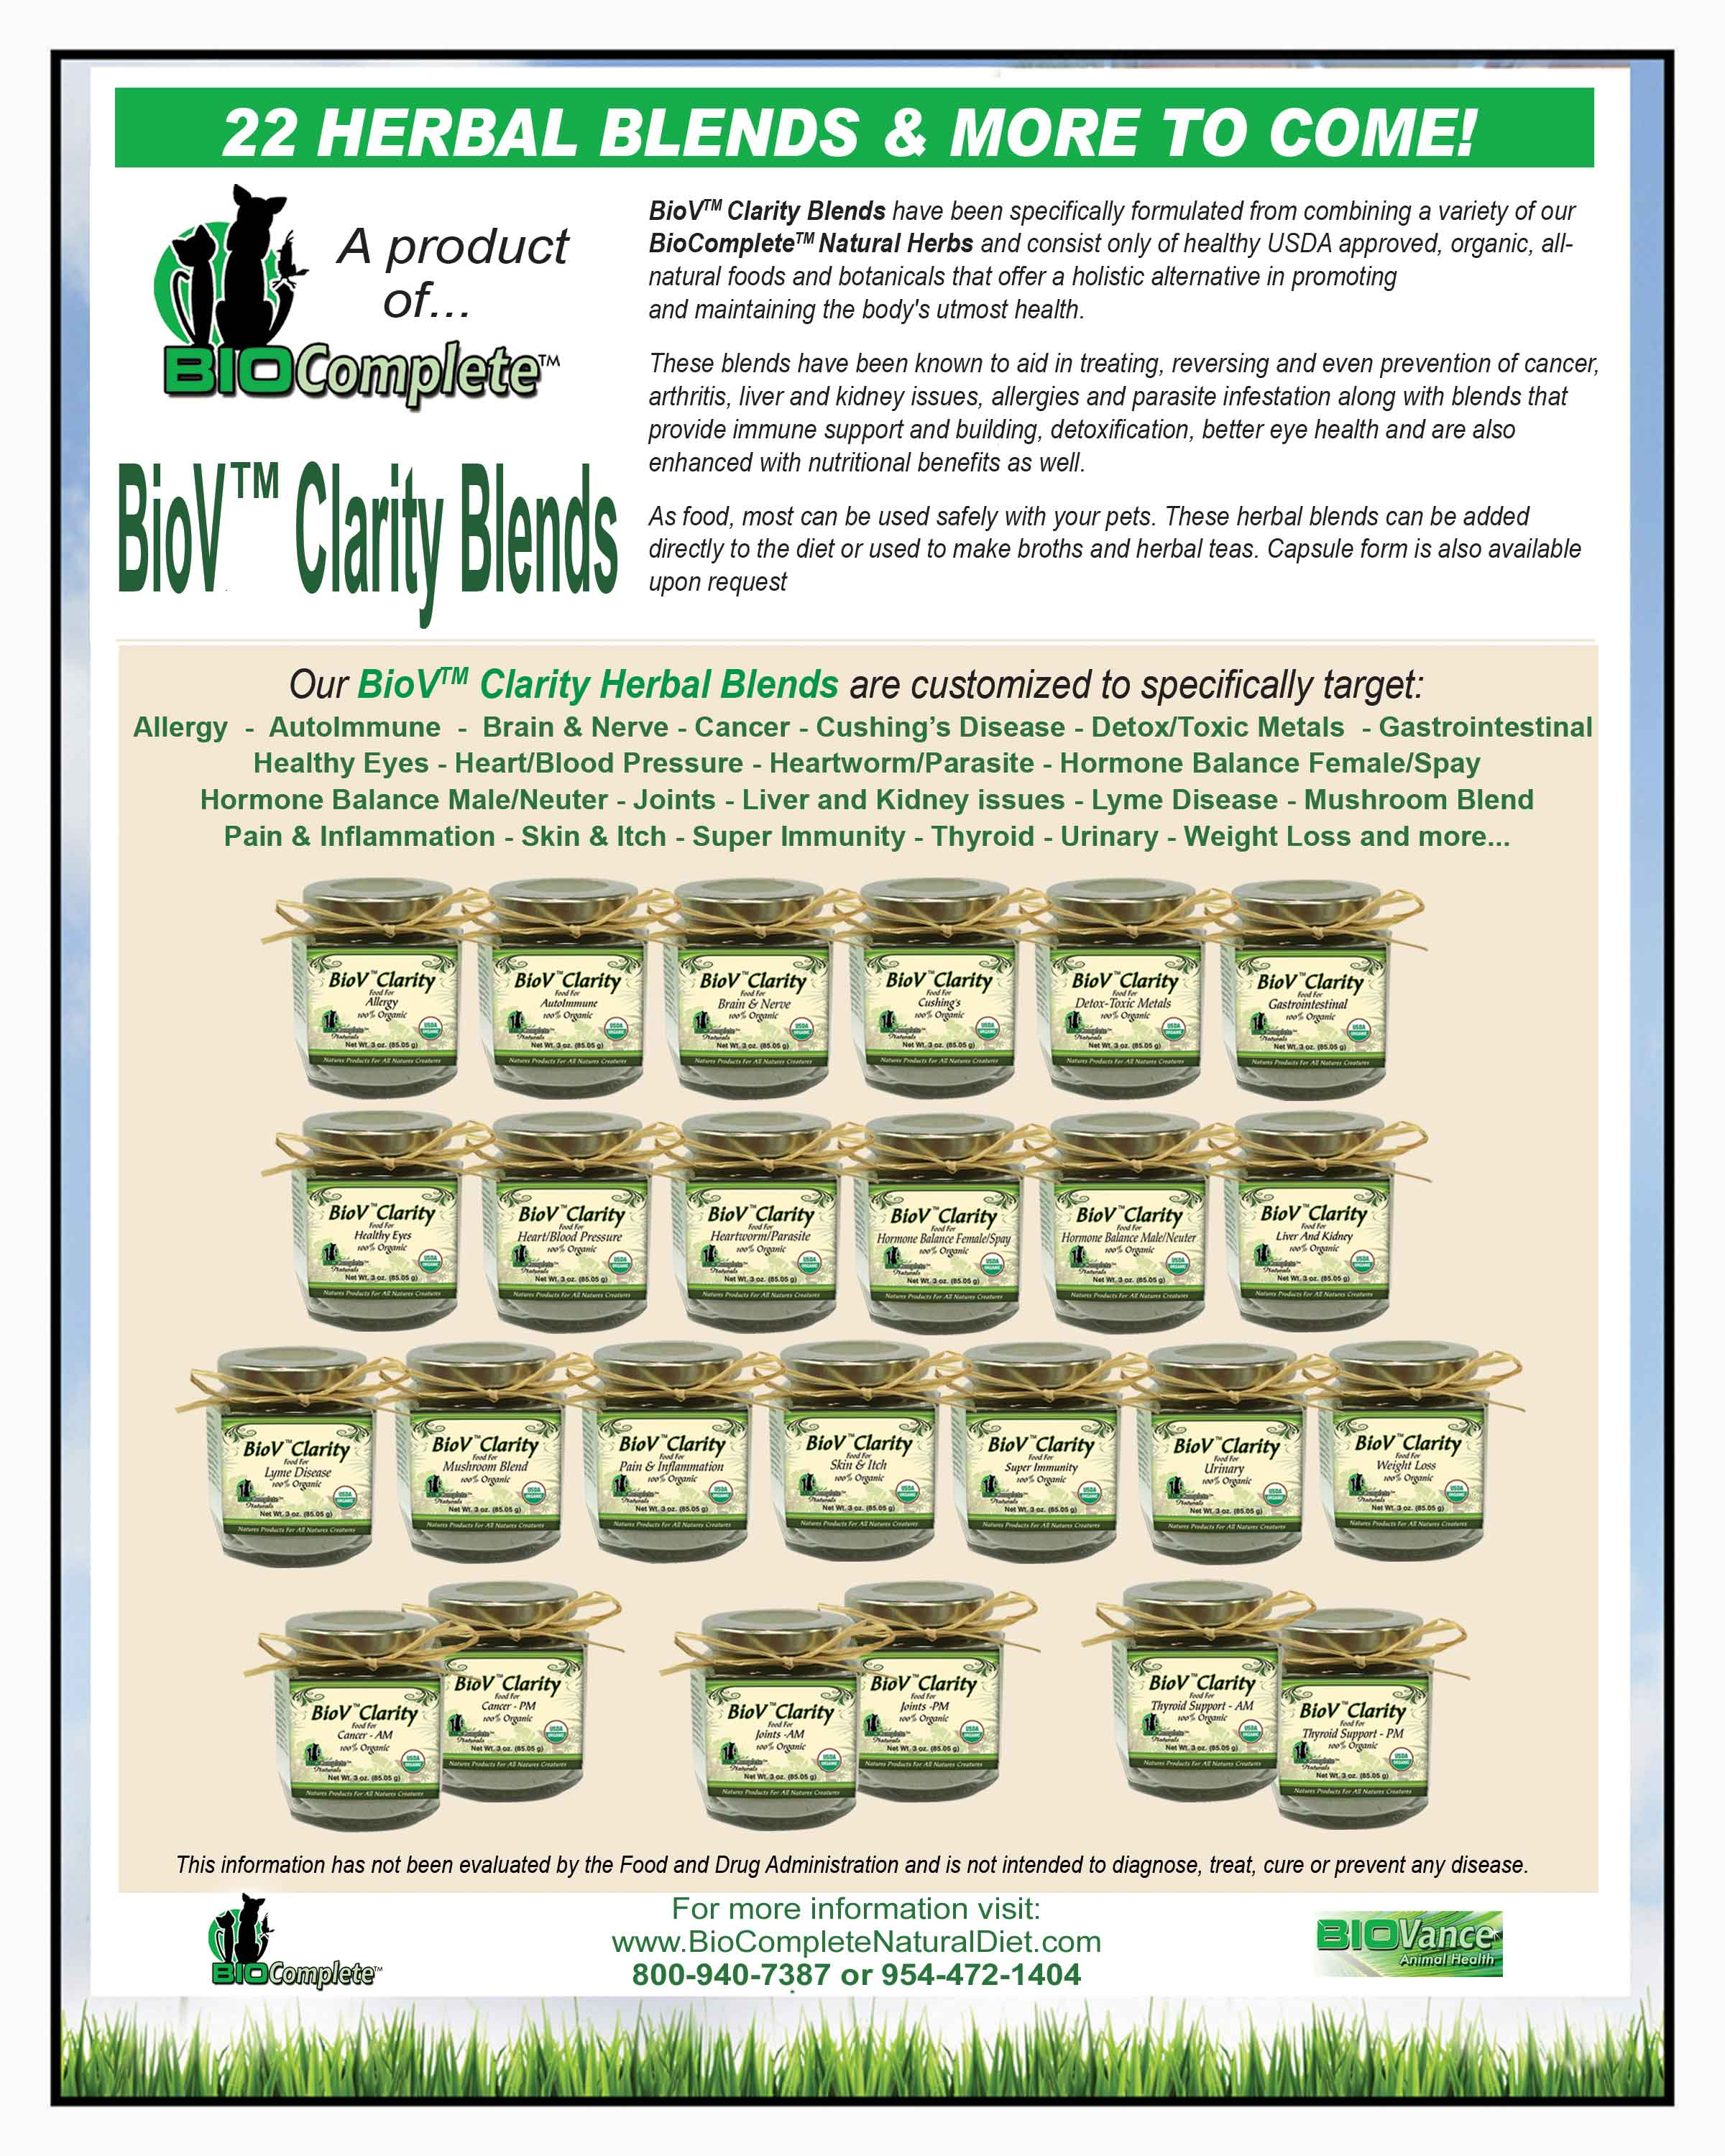 BioV Clarity Herbal Blends